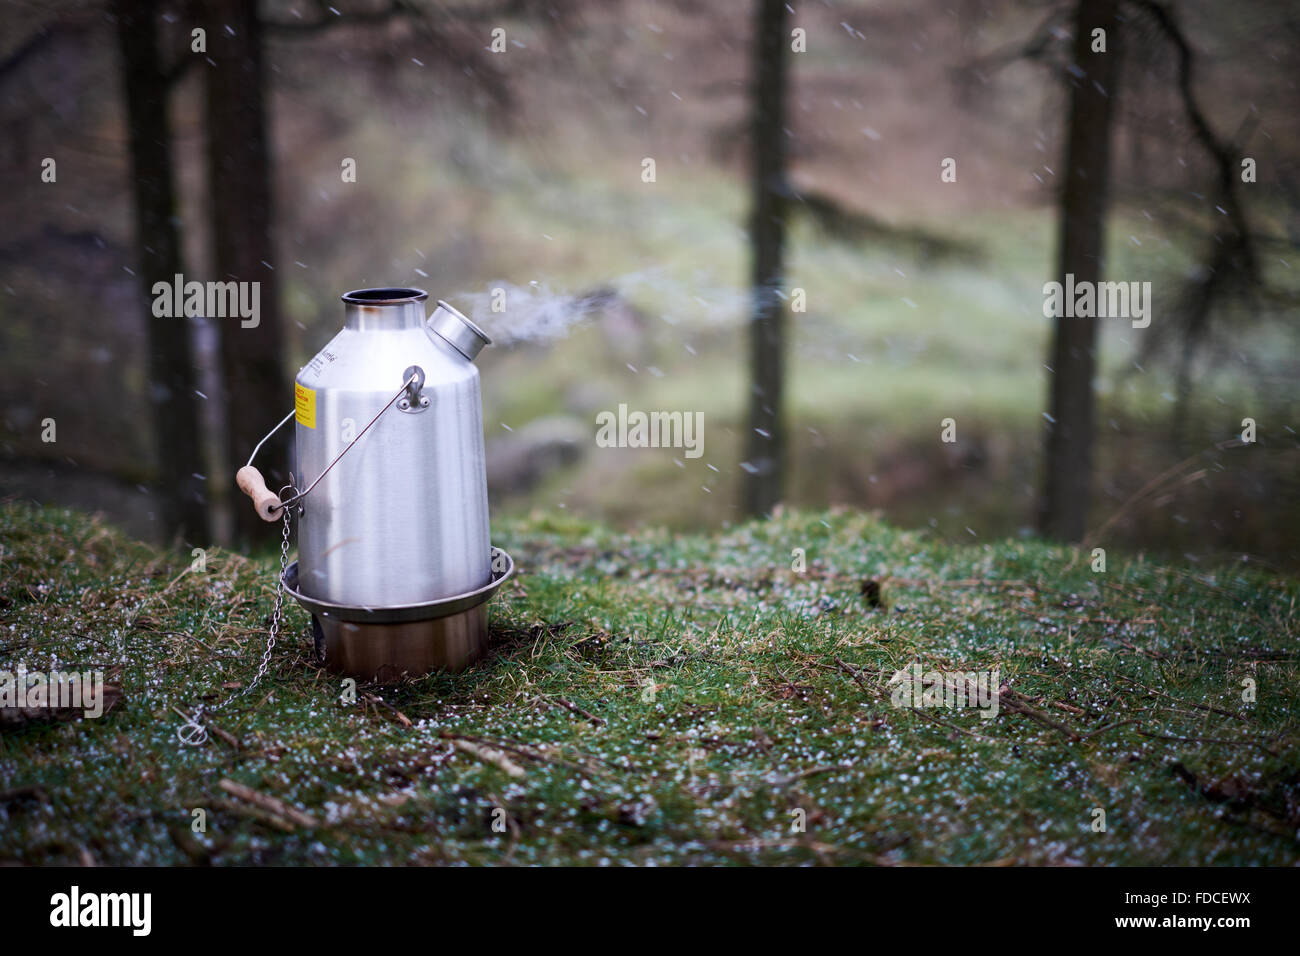 A Kelly Kettle lit and burning with steam. Shot in the snow / hail / winter - Stock Image